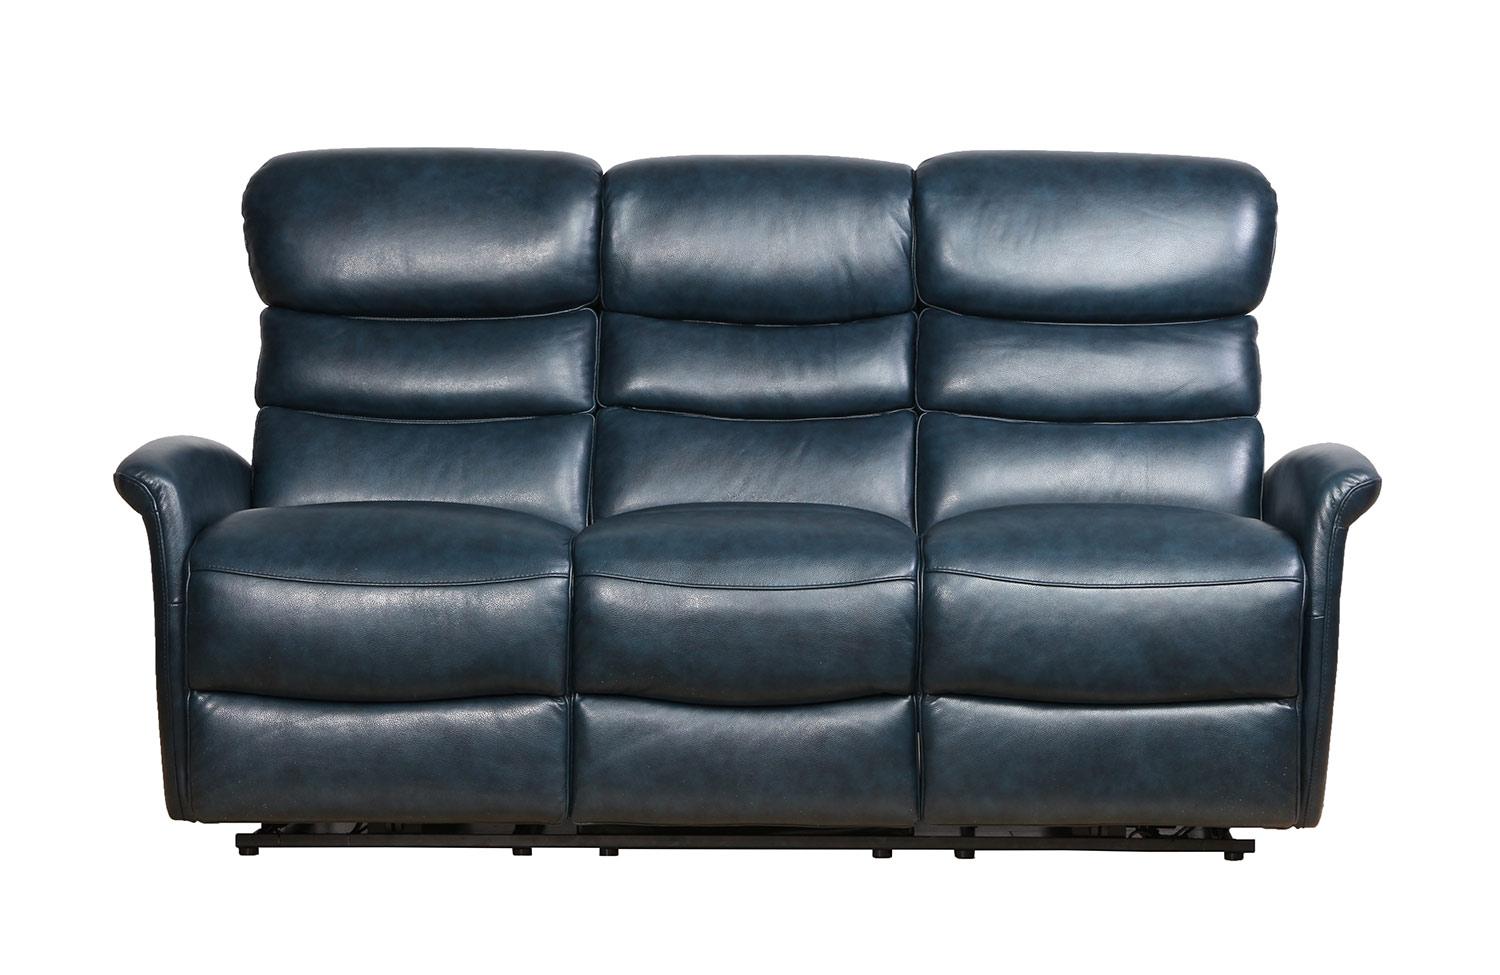 Barcalounger Kelso Power Reclining Sofa with Power Head Rests - Ryegate Sapphire Blue/Leather Match